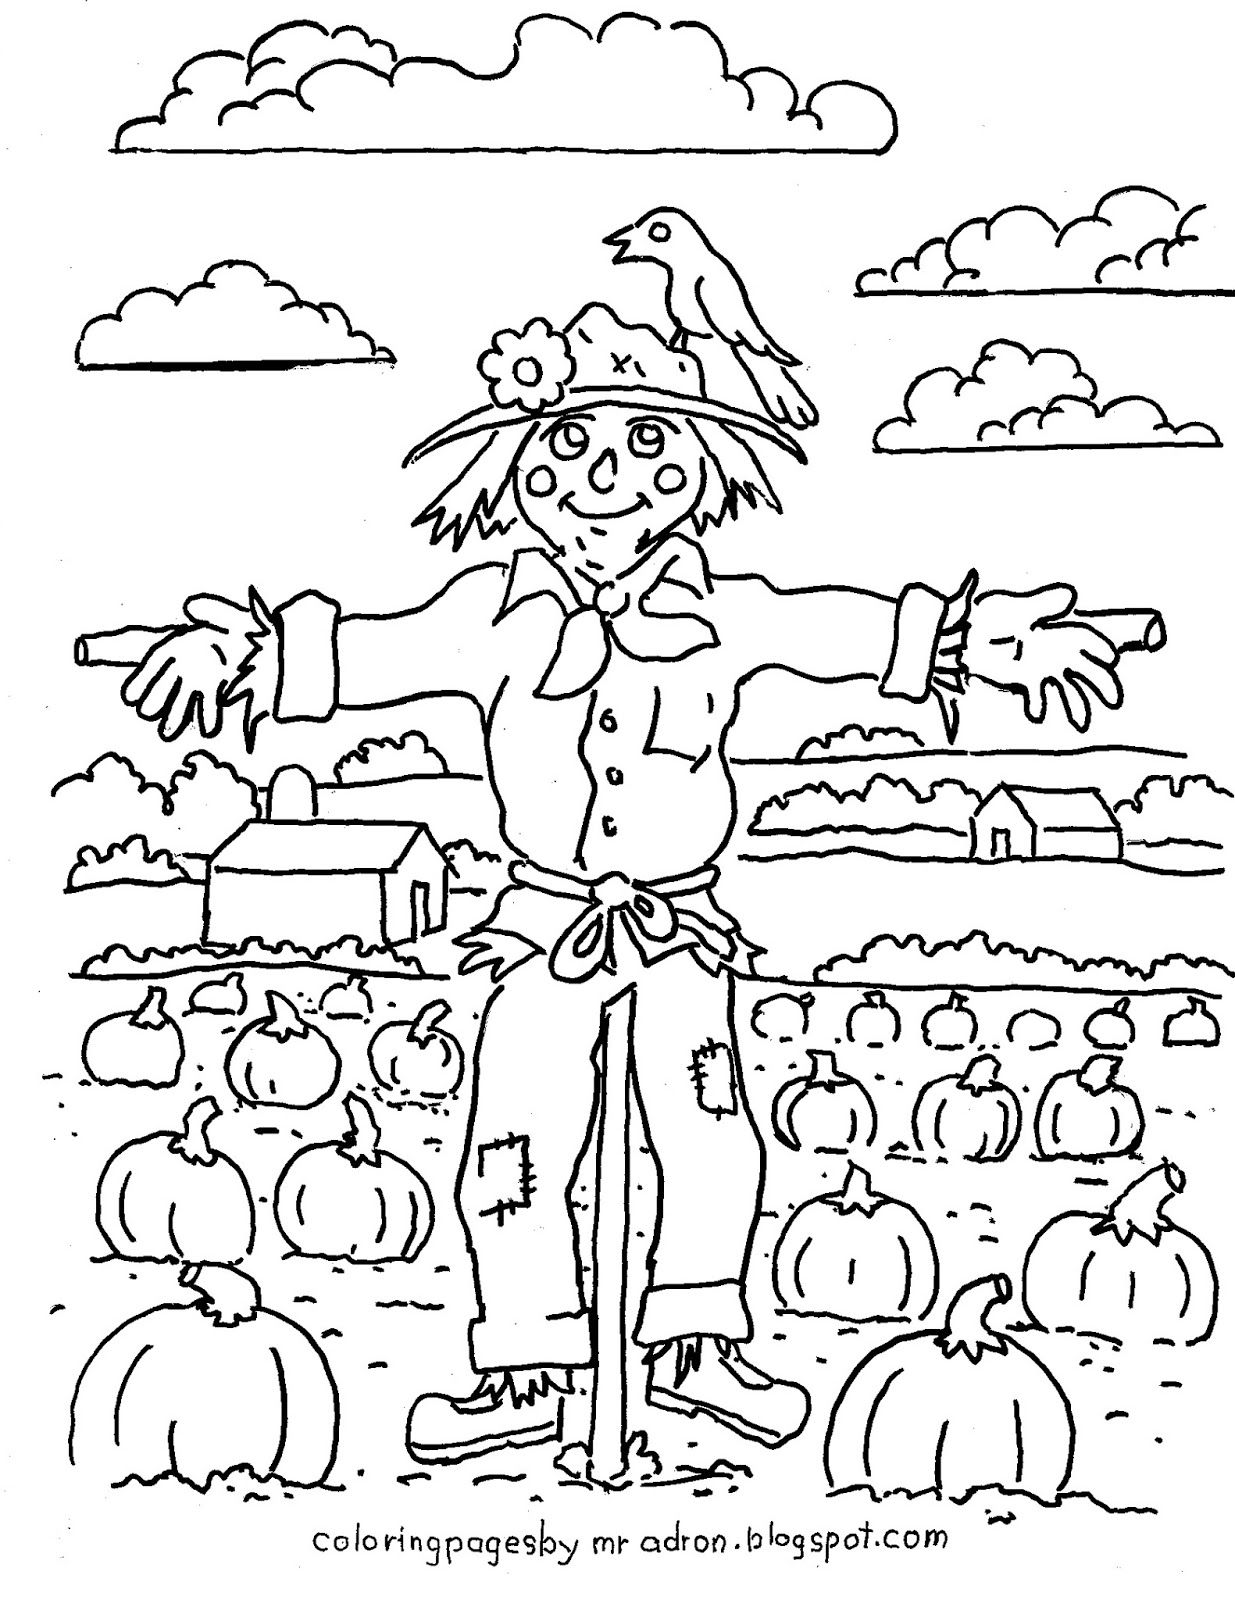 Coloring Pages for Kids by Mr. Adron: Printable Harvest Scarecrow ...